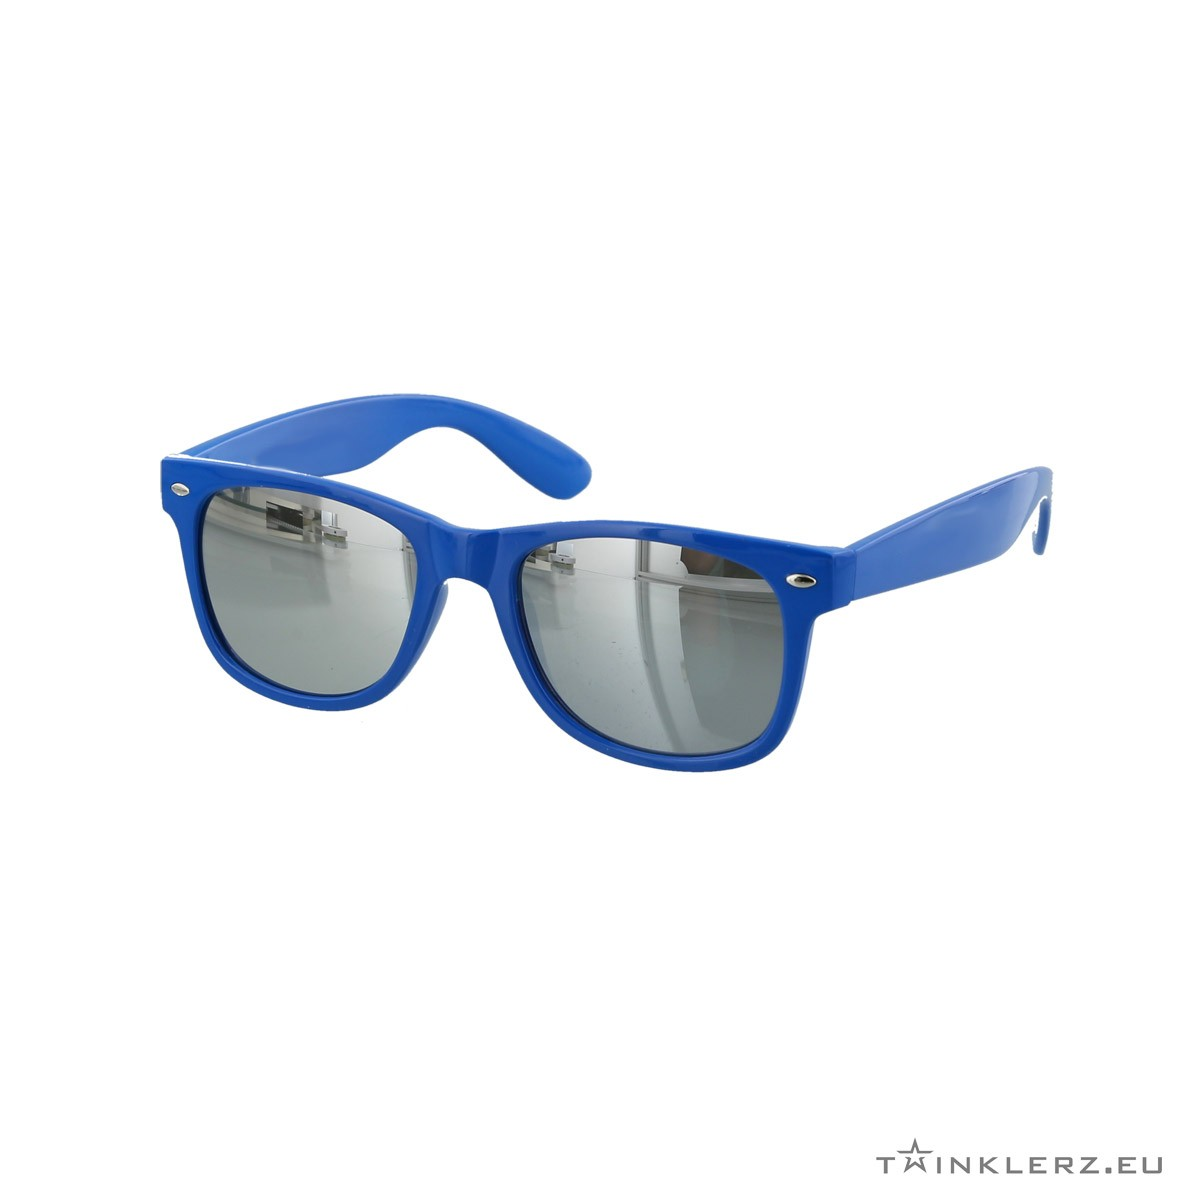 Silver mirrored blue wayfarer sunglasses